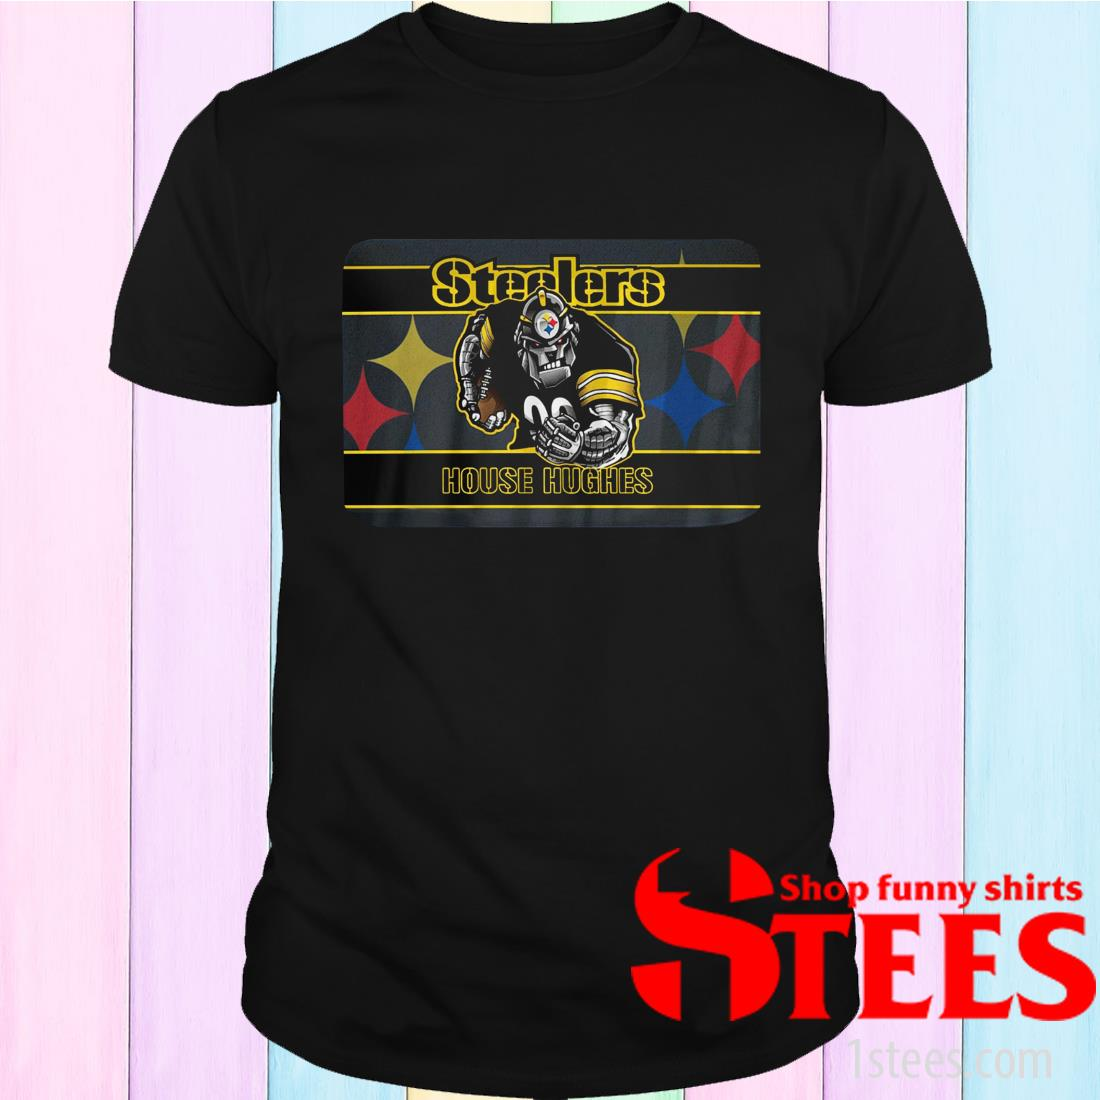 Pittsburgh Steelers House Hughes Shirt